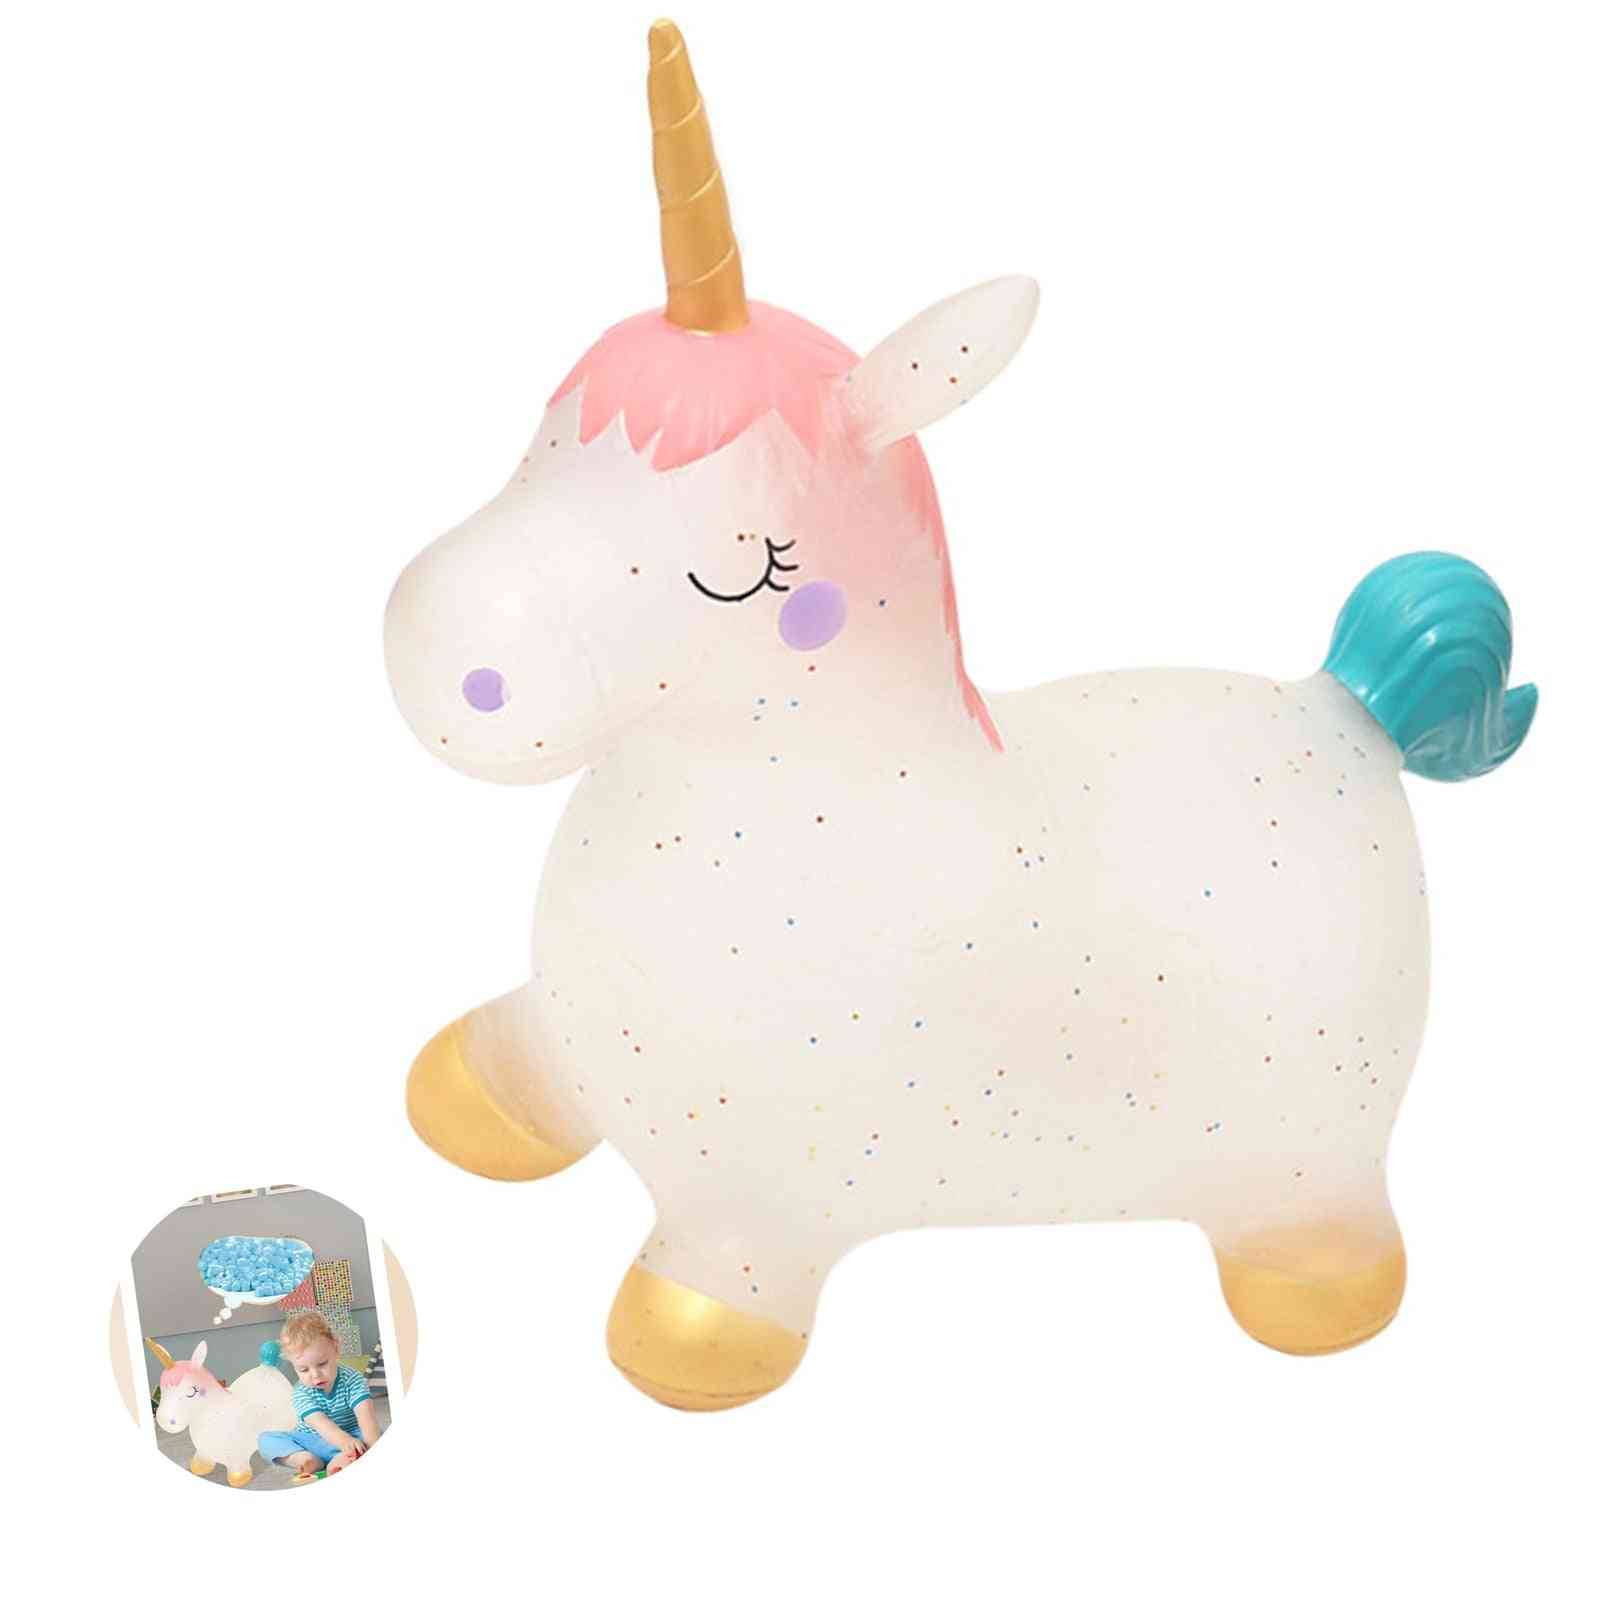 Cute Baby Inflatable Lovely Unicorn Toy Pvc Bouncy With One Air Pump Cute Jumping Horse Outdoor Sports Games Toy